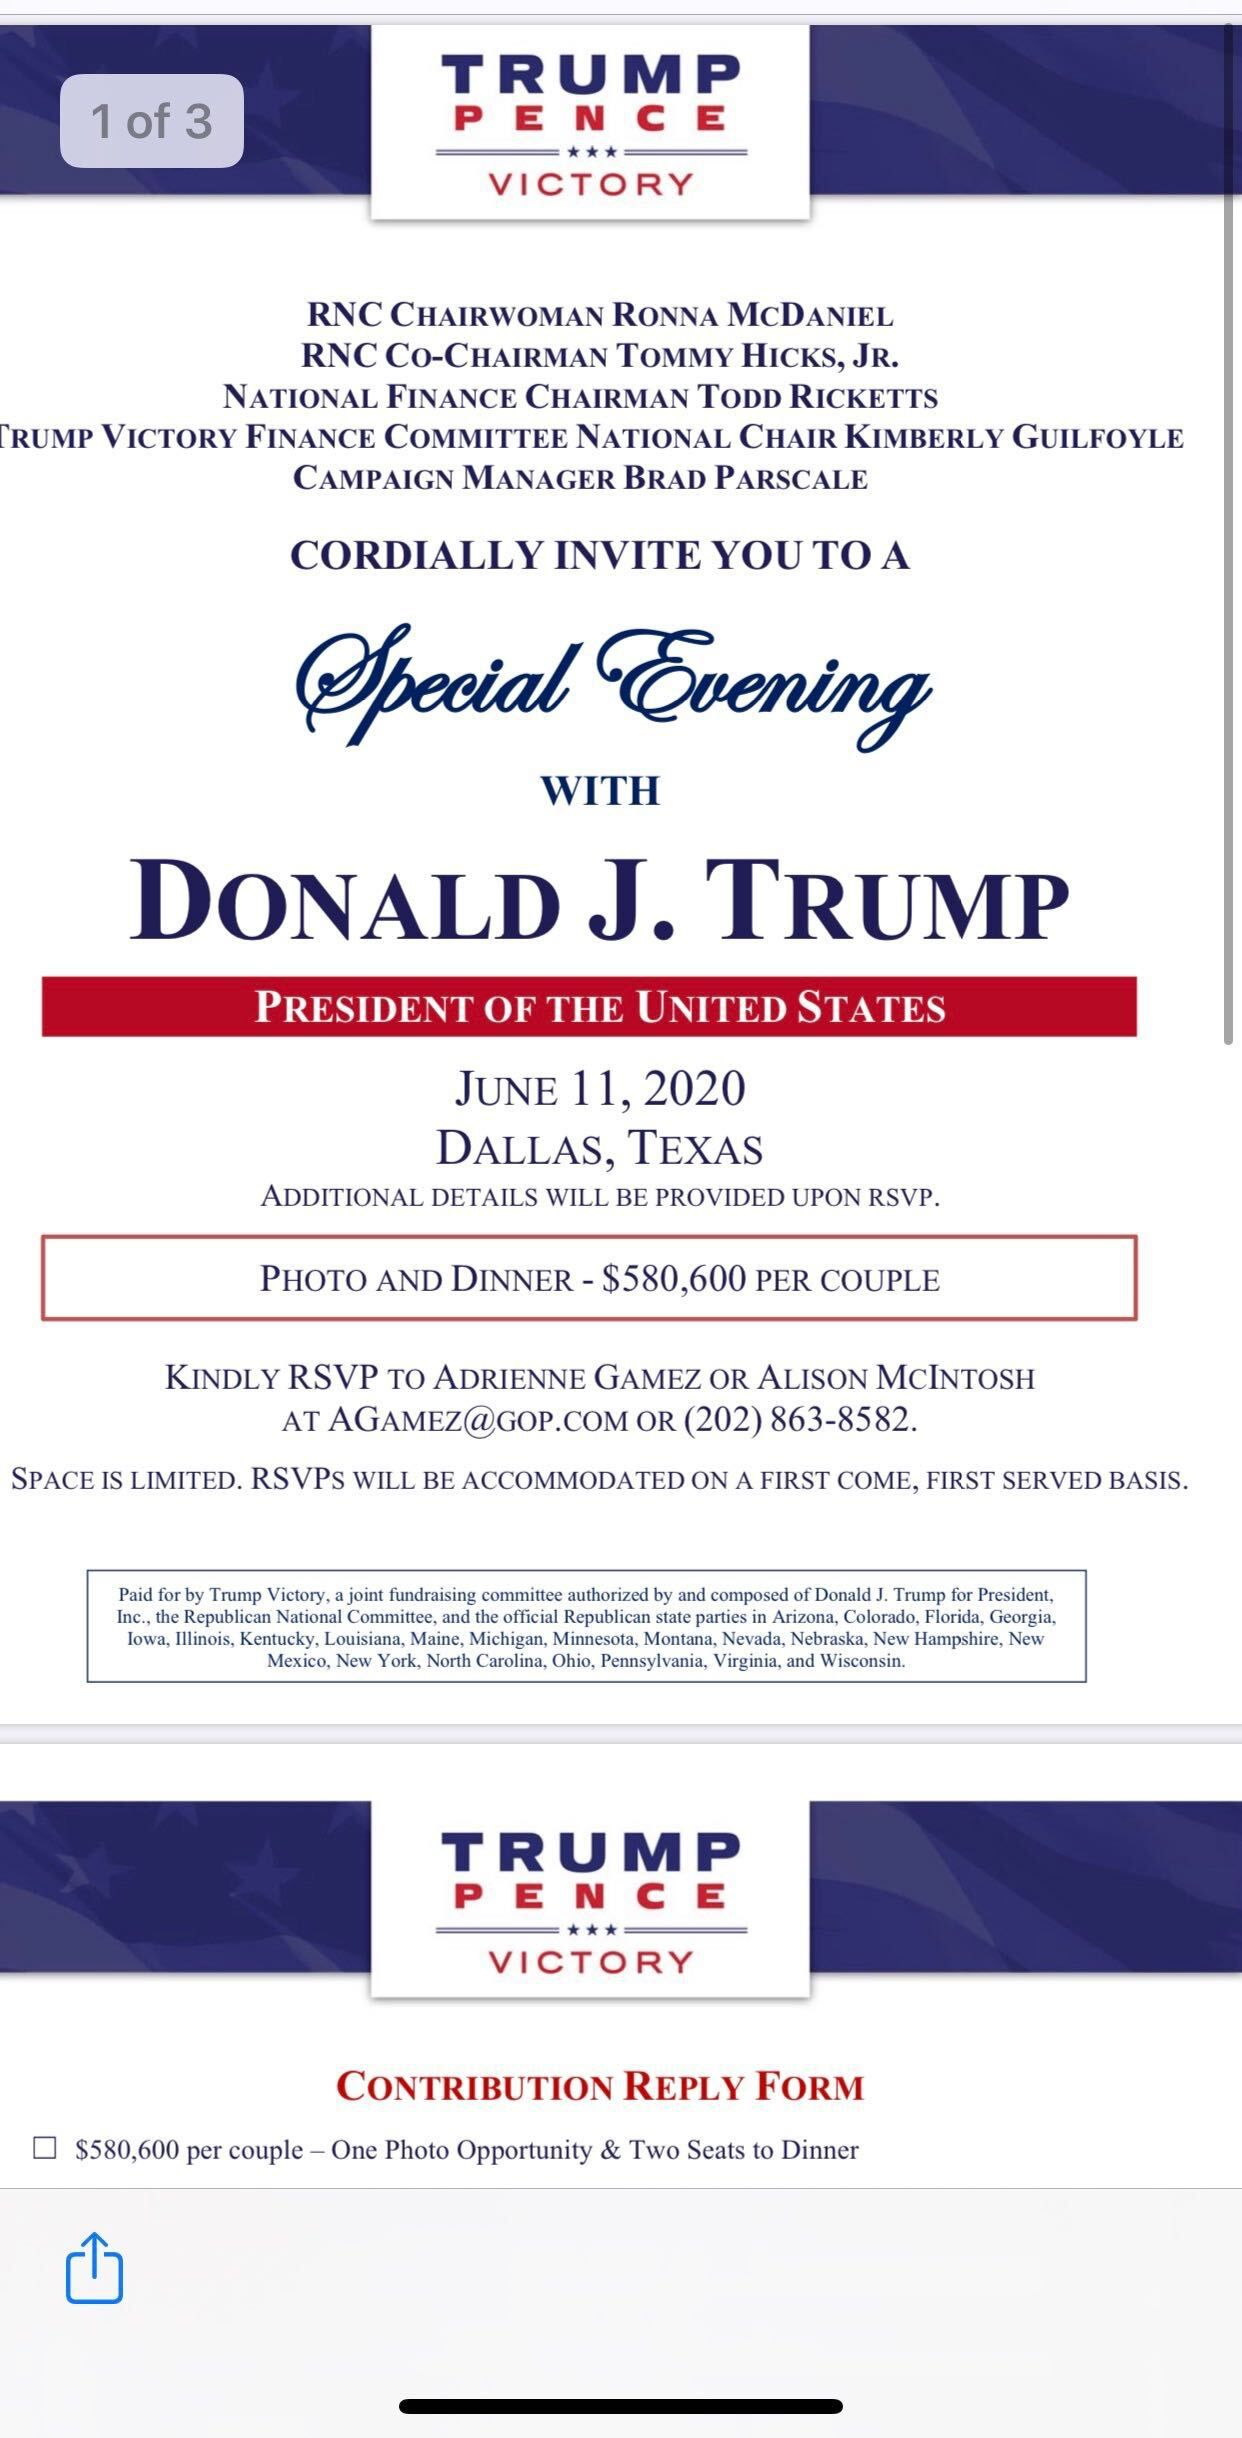 Invitation obtained by The Dallas Morning News to a Trump Victory fund-raising dinner with President Trump on June 11, 2020, in Dallas.